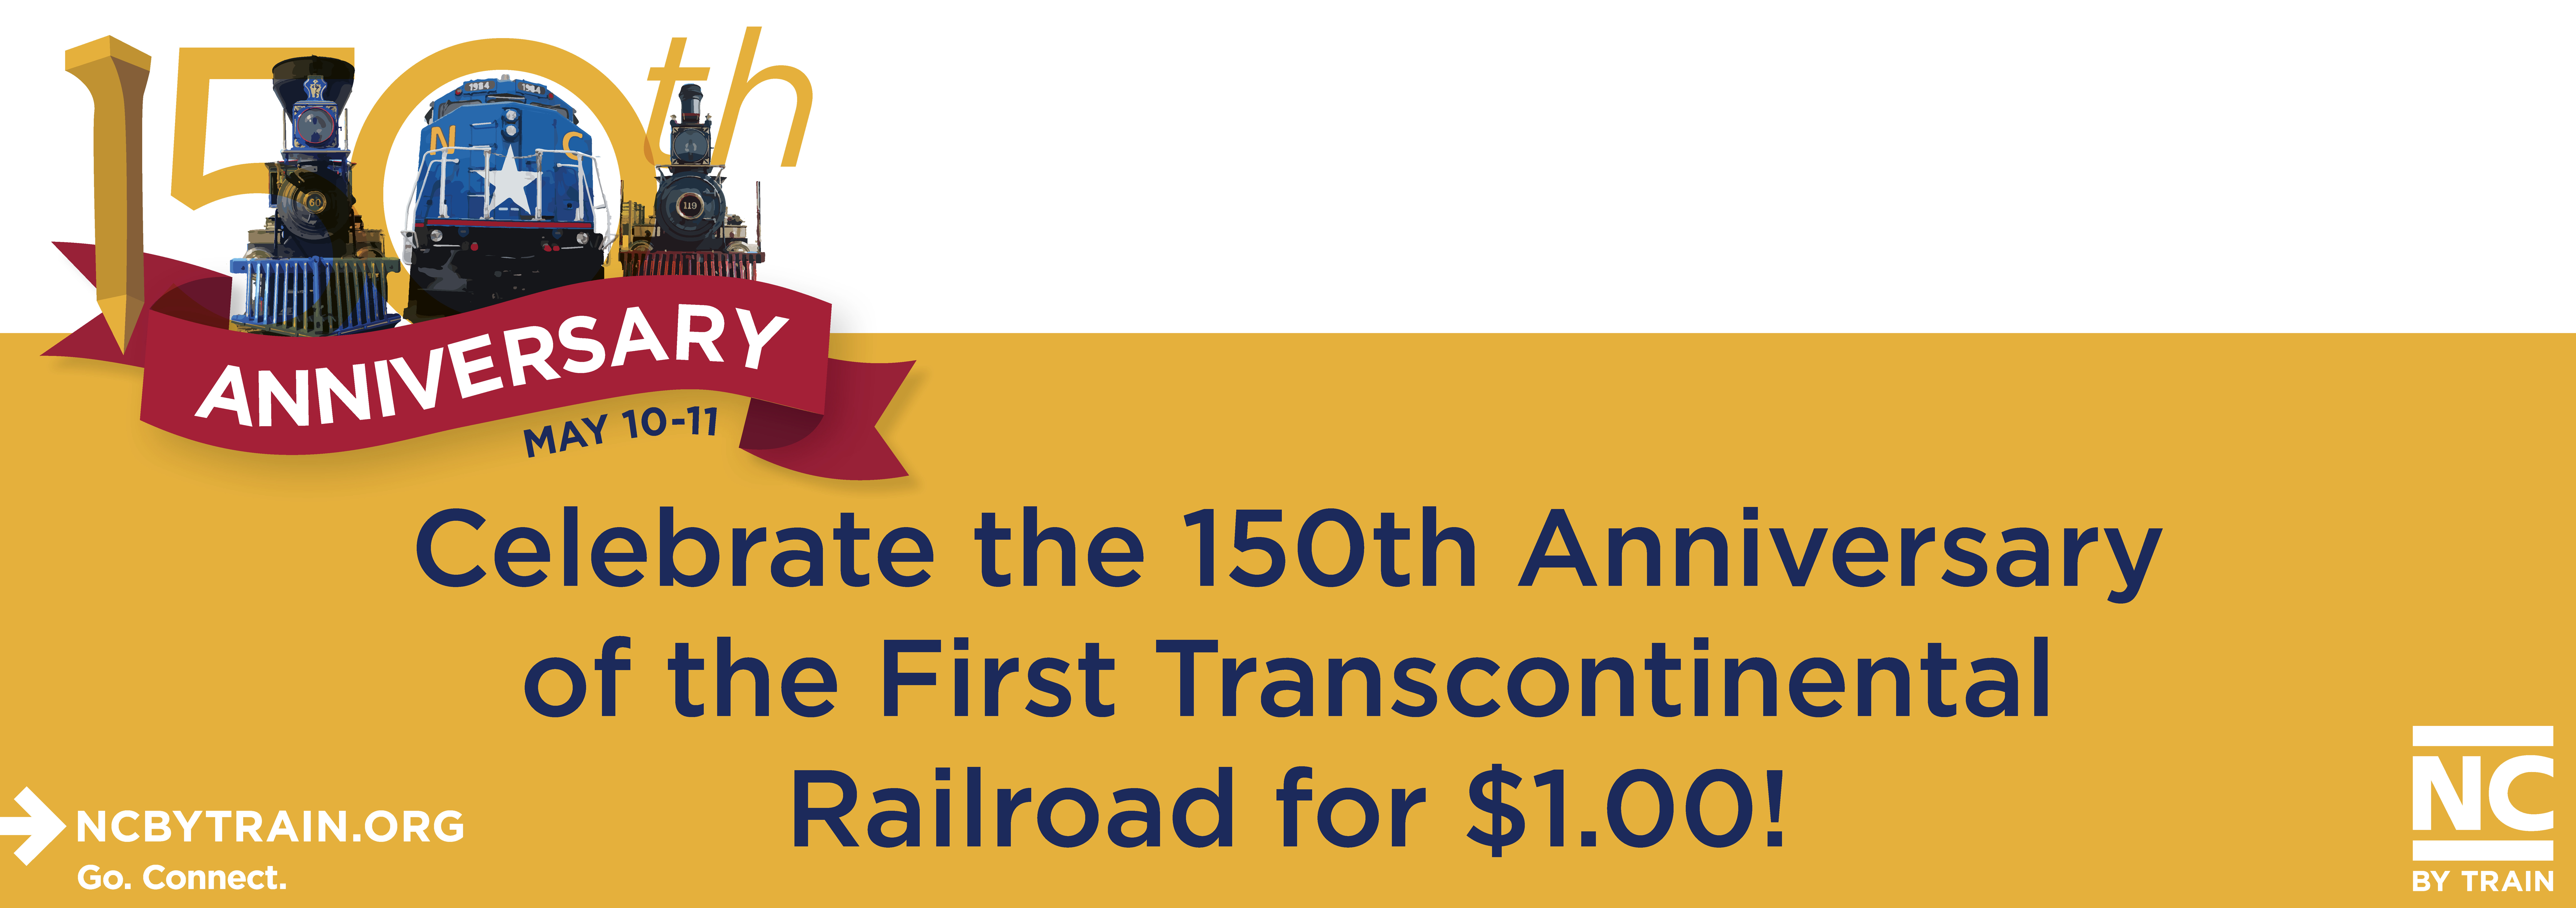 Celebrate 150 Years of the Transcontinental Railroad for $1